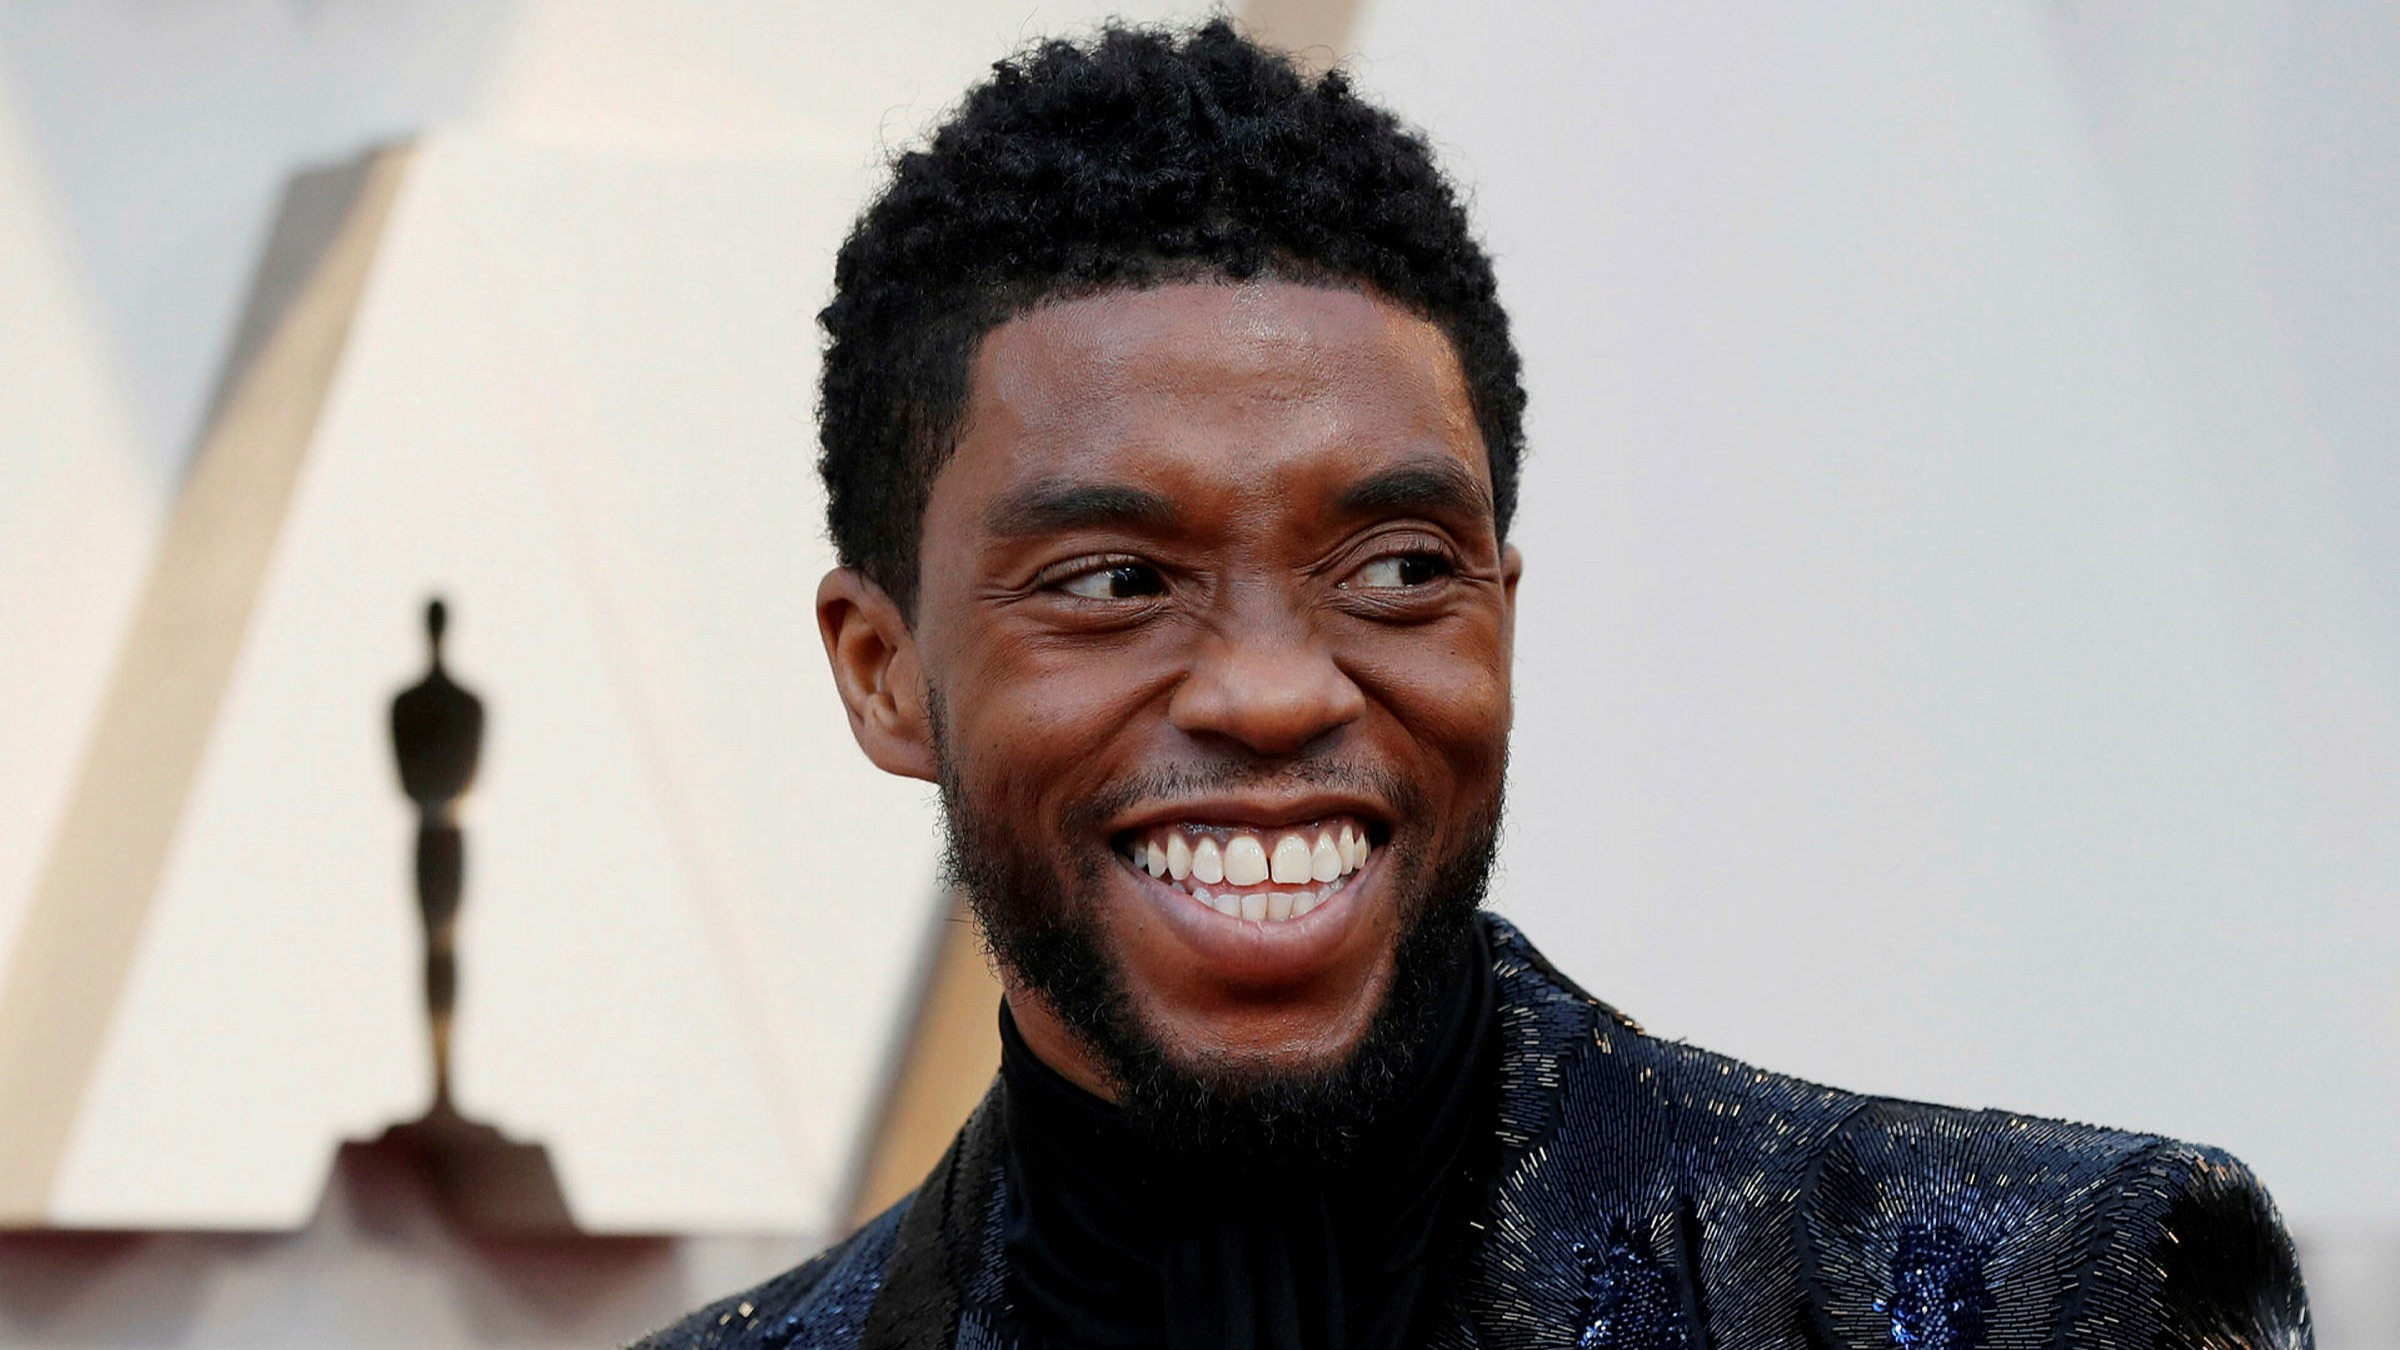 Black Panther Star Chadwick Boseman Dies After A Four Year Battle With Colon Cancer Financial Times